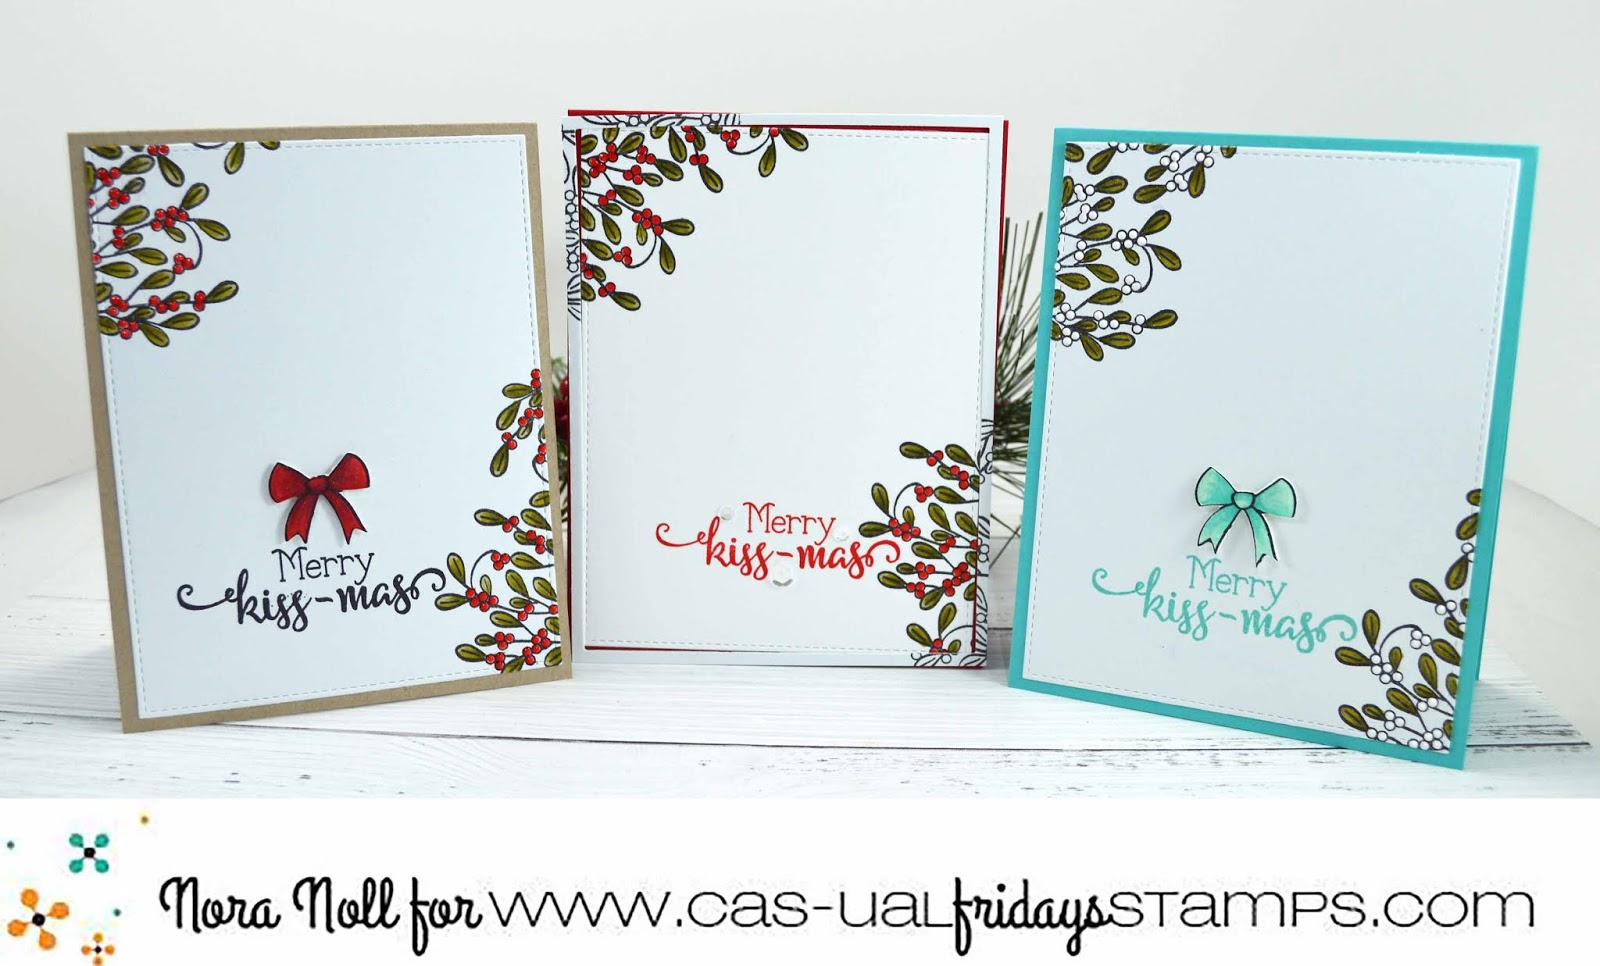 CAS-ual Fridays Stamps: Simple Christmas Cards using the Mistletoe ...